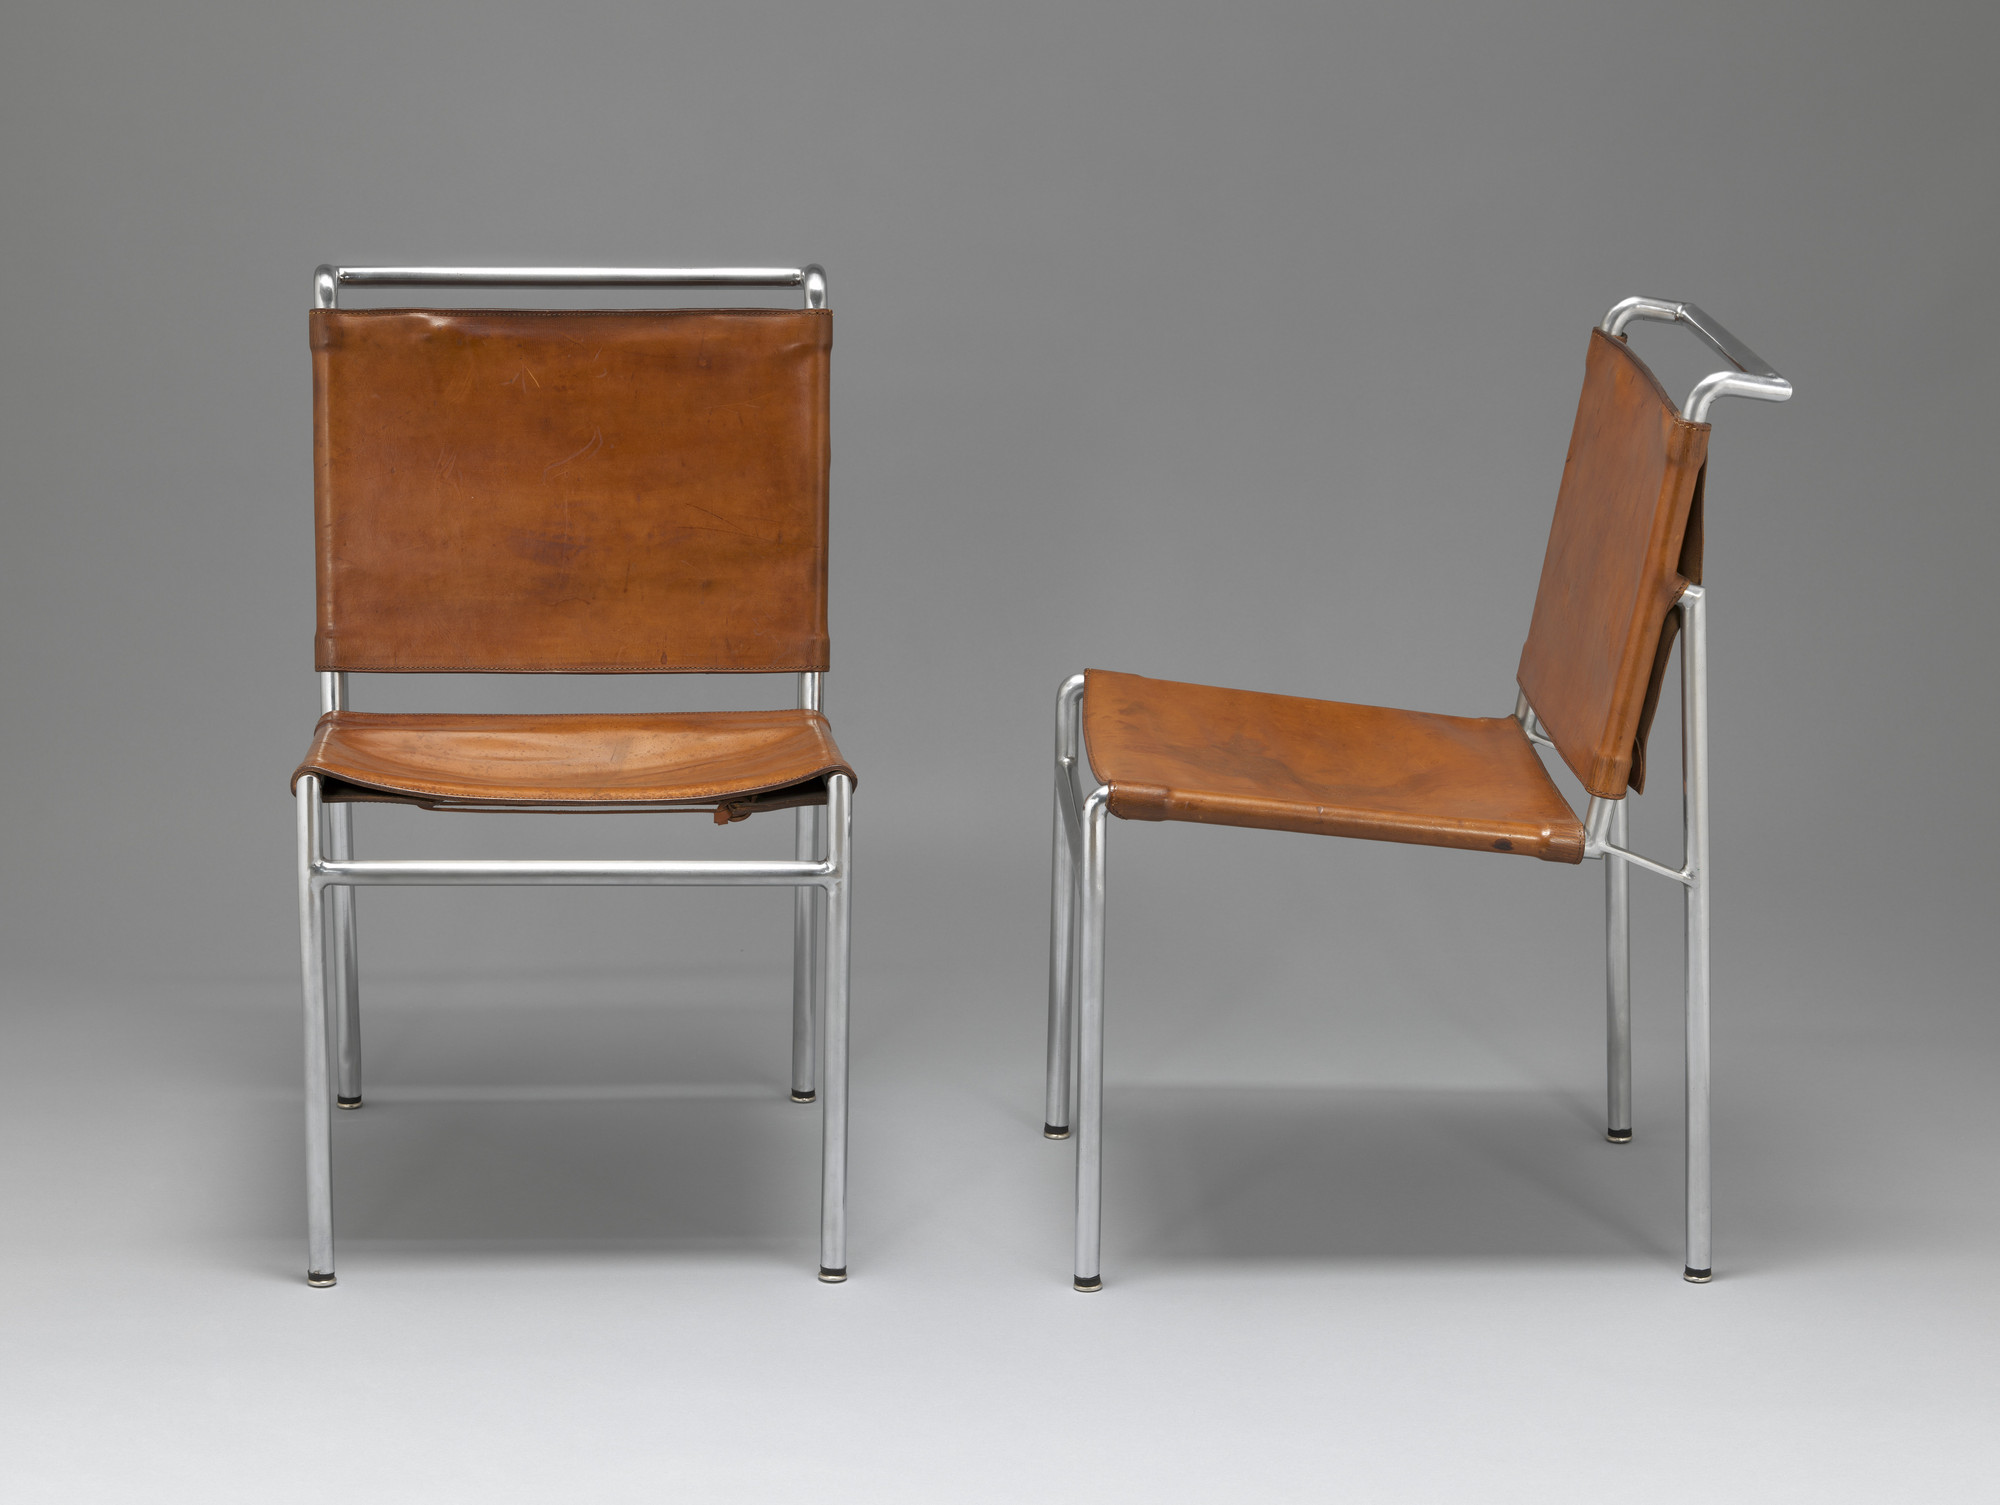 Eileen Gray Tisch eileen gray chair for the villa tempe a pailla c 1935 moma